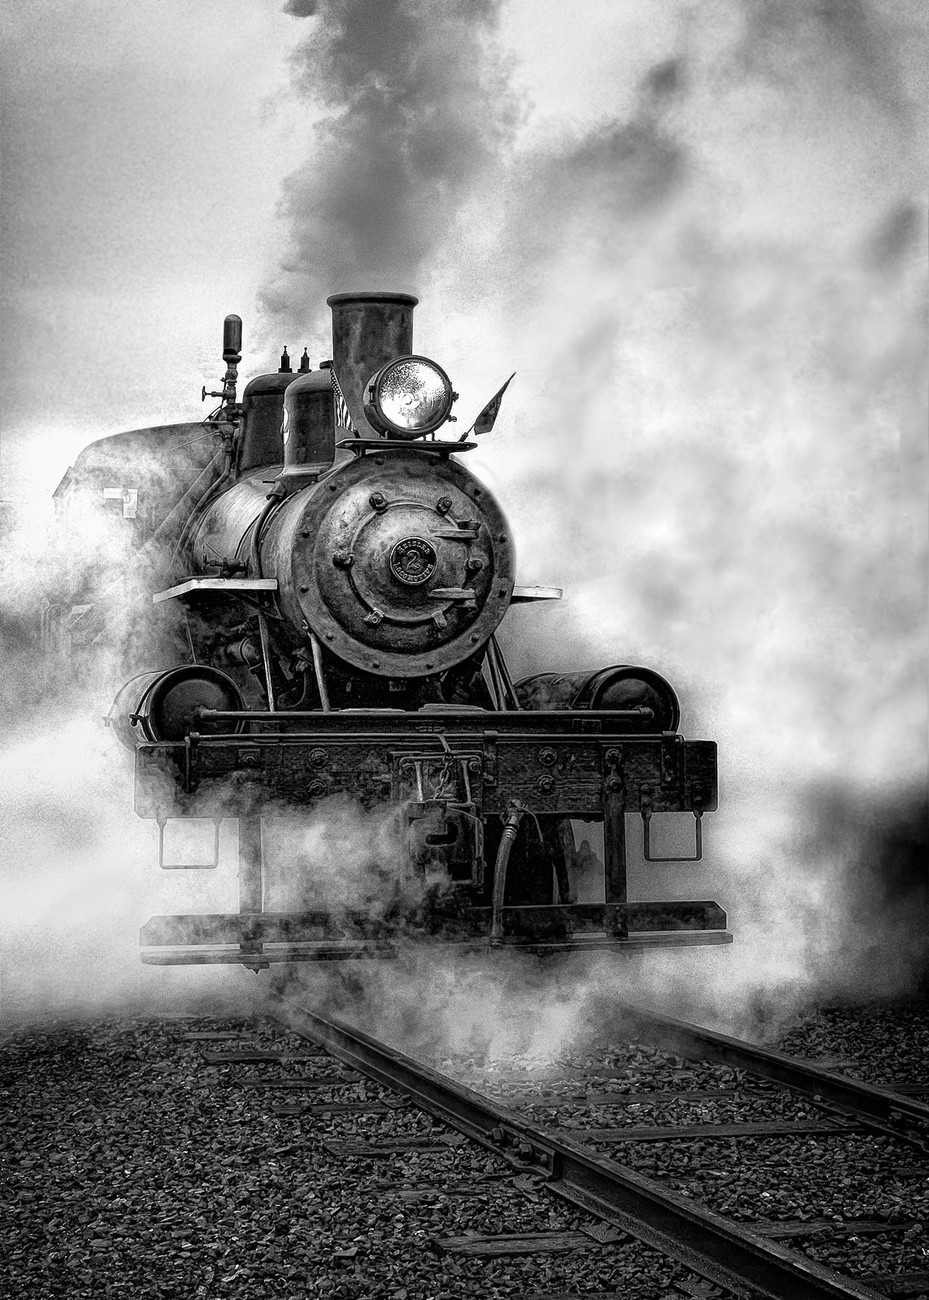 This photograph of a vintage train in Garibaldi, Oregon was captured on a rainy, foggy morning on the Oregon Coast. I timed the shot to capture the steam as it was released when the train was coming to a stop. The black and white conversion was accomplished using NIK Silver Efex Pro 2 using Afga 100 simulation and the underexposure preset. A custom preset was developed to enhance the highlights and shadows.